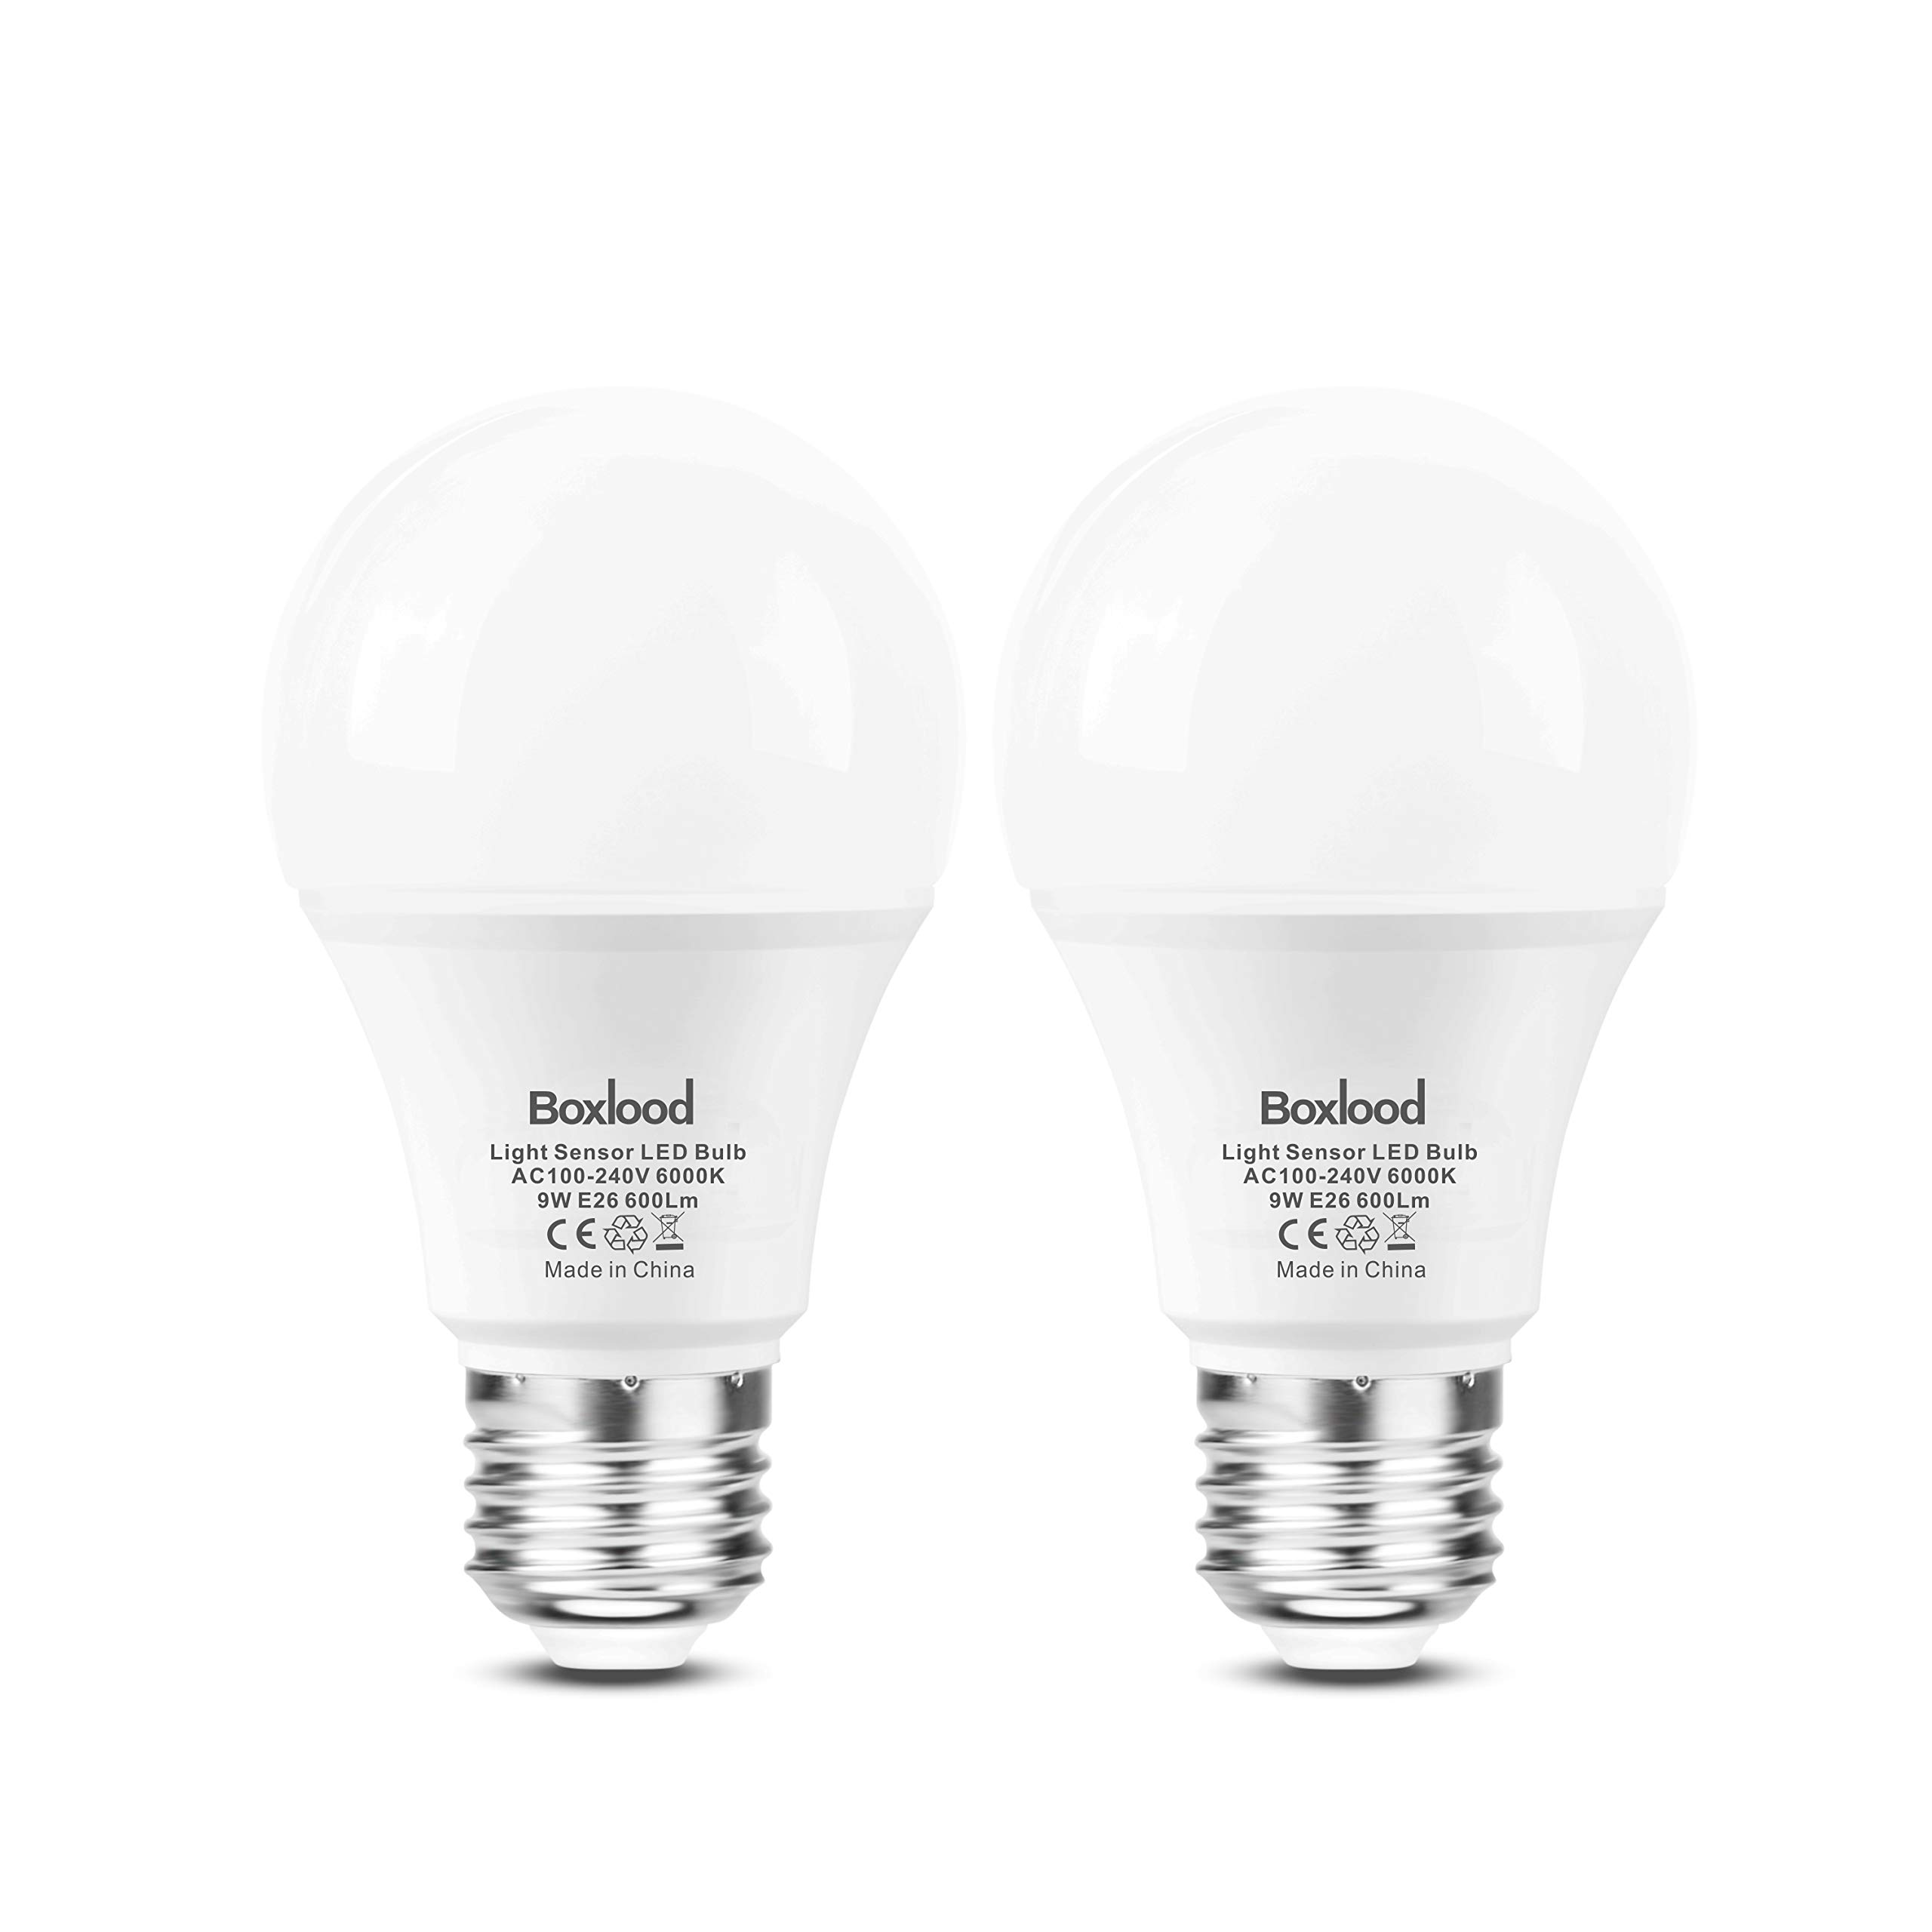 Dusk to Dawn A19 LED Light Bulb, Built in Light Sensor, Plug and Play, 90% Energy Saving, 6000K Cool White, 60W Halogen Equivalent, E26, AC120V, Auto On/Off Lighting Bulb (2 Pack) by Boxlood by Boxlood